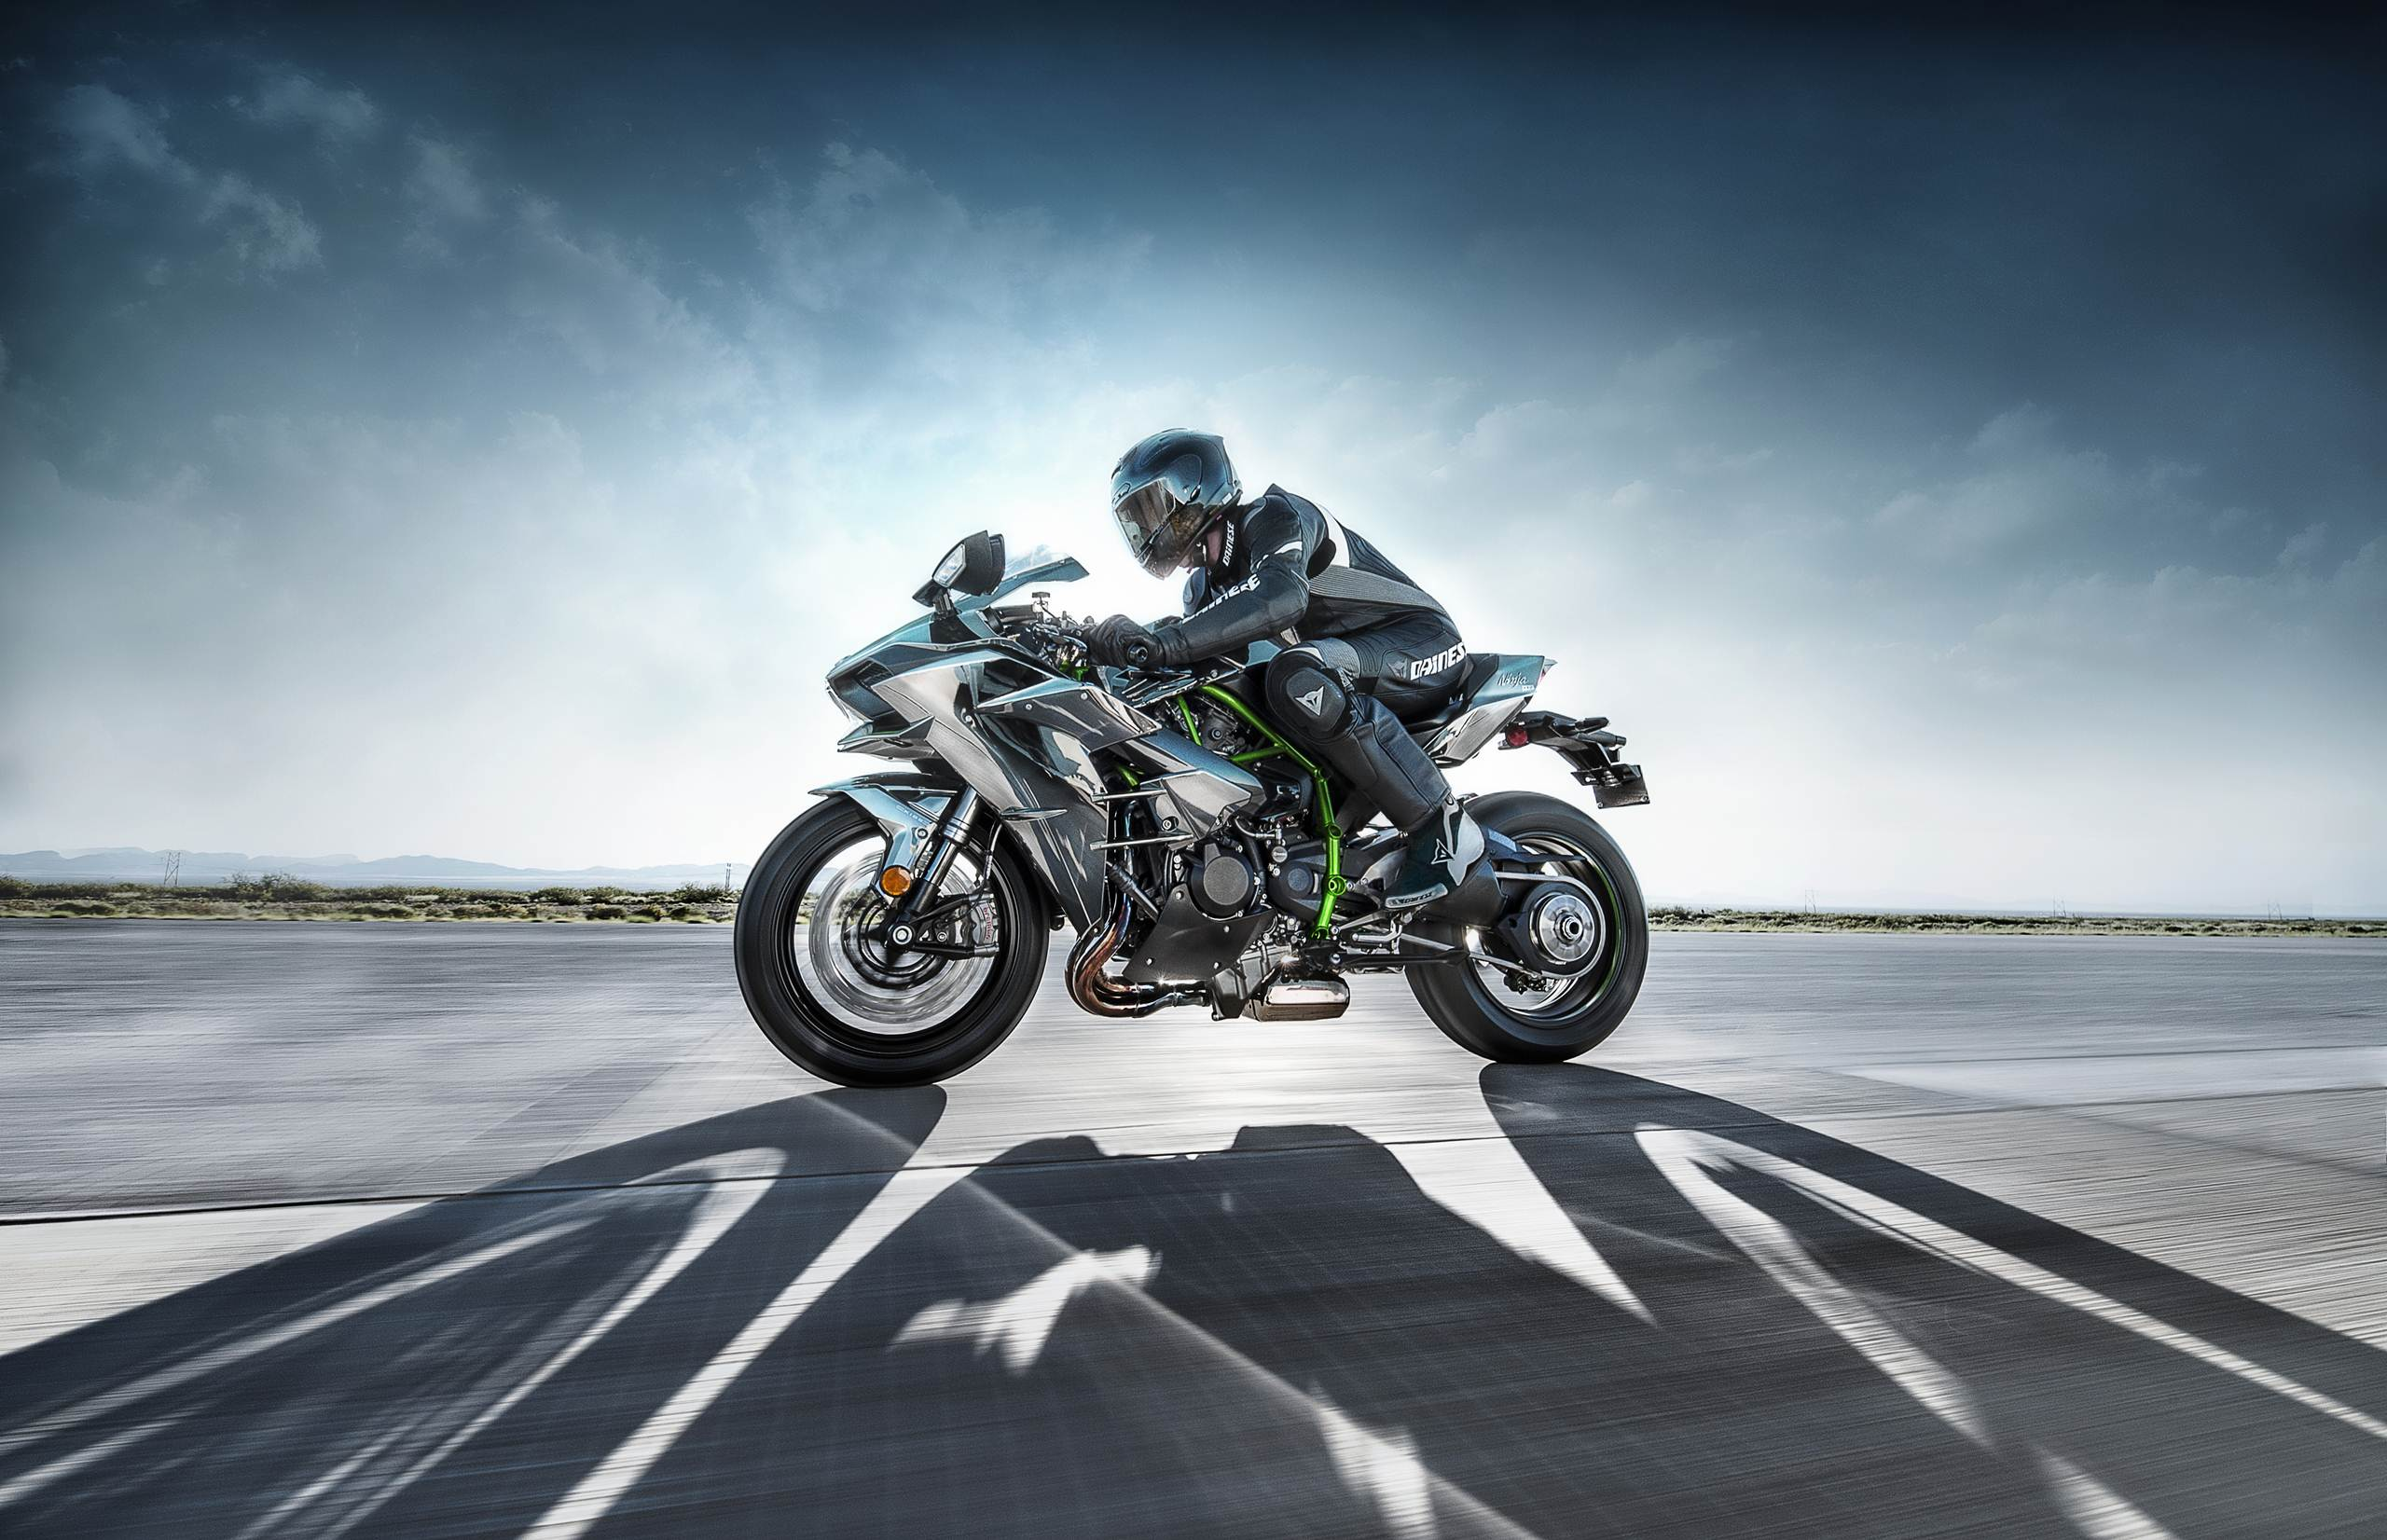 Kawasaki H2r Wallpapers High Quality